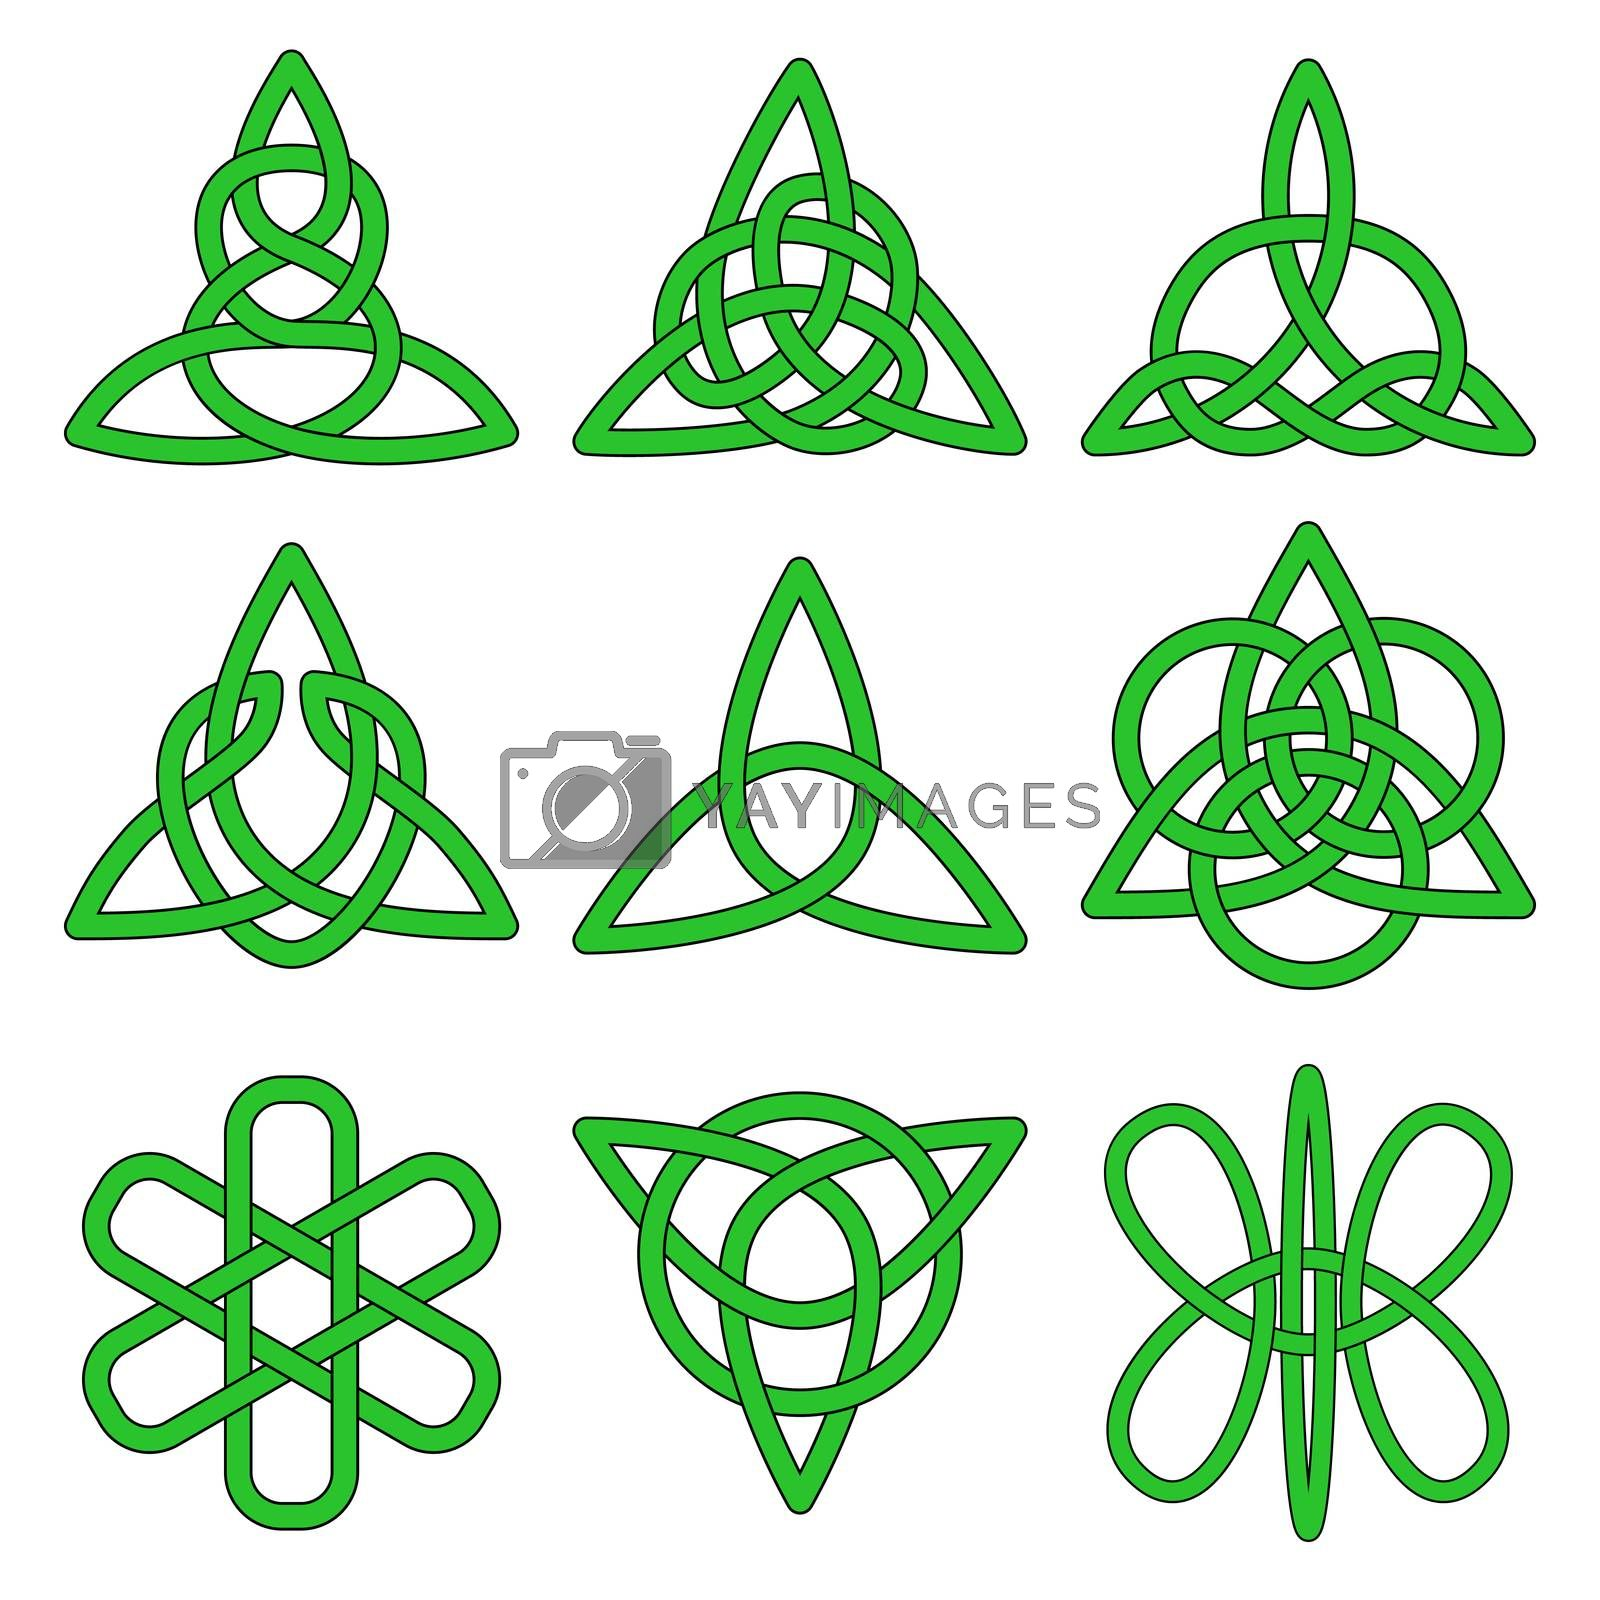 Royalty free image of Collection of Celtic knots  by Zhukow